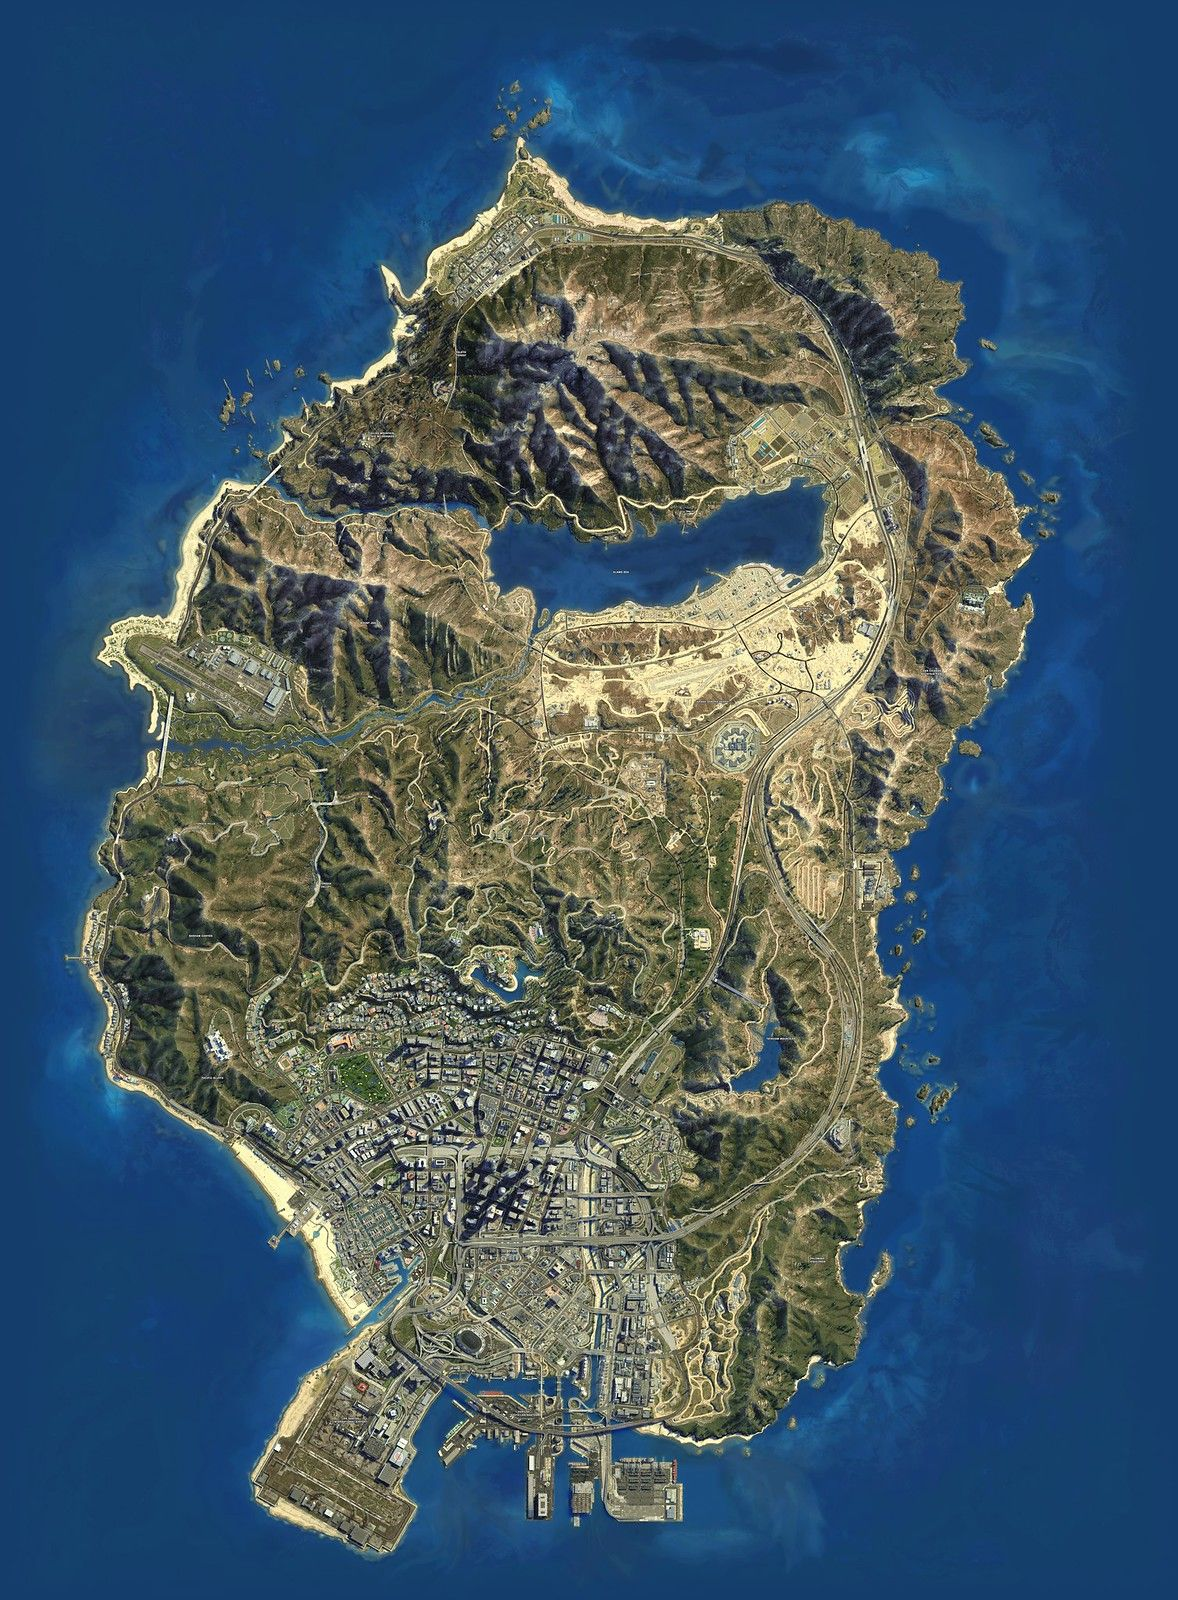 Los Santos Gta V Map Large In 2021 Gta Psychedelic Illustration Grand Theft Auto Games